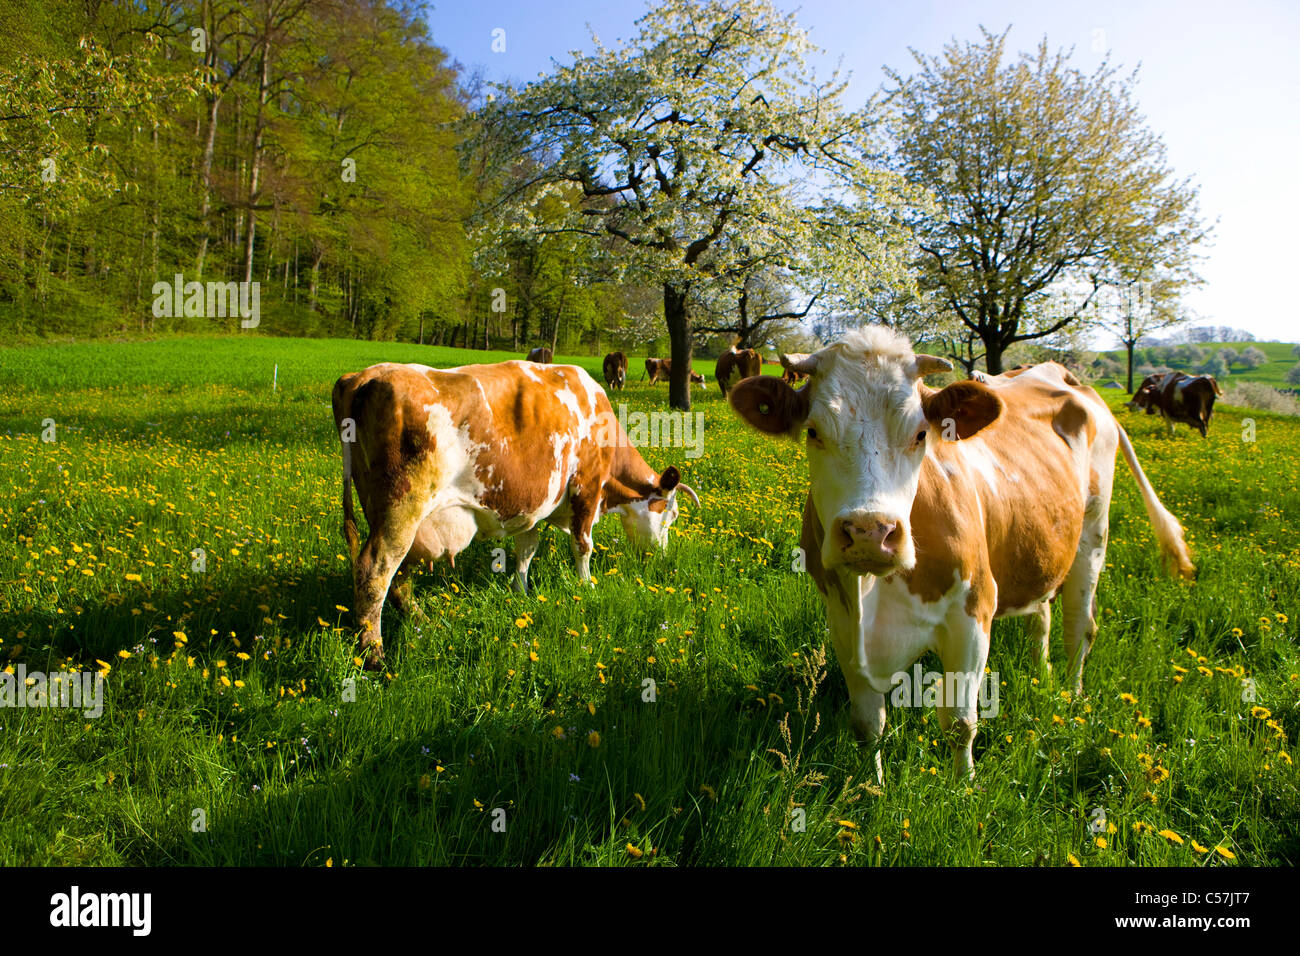 Reigoldswil, Switzerland, Europe, canton Basel land, meadow, blossoming, fruit-trees, cherry trees, cows, cow's - Stock Image